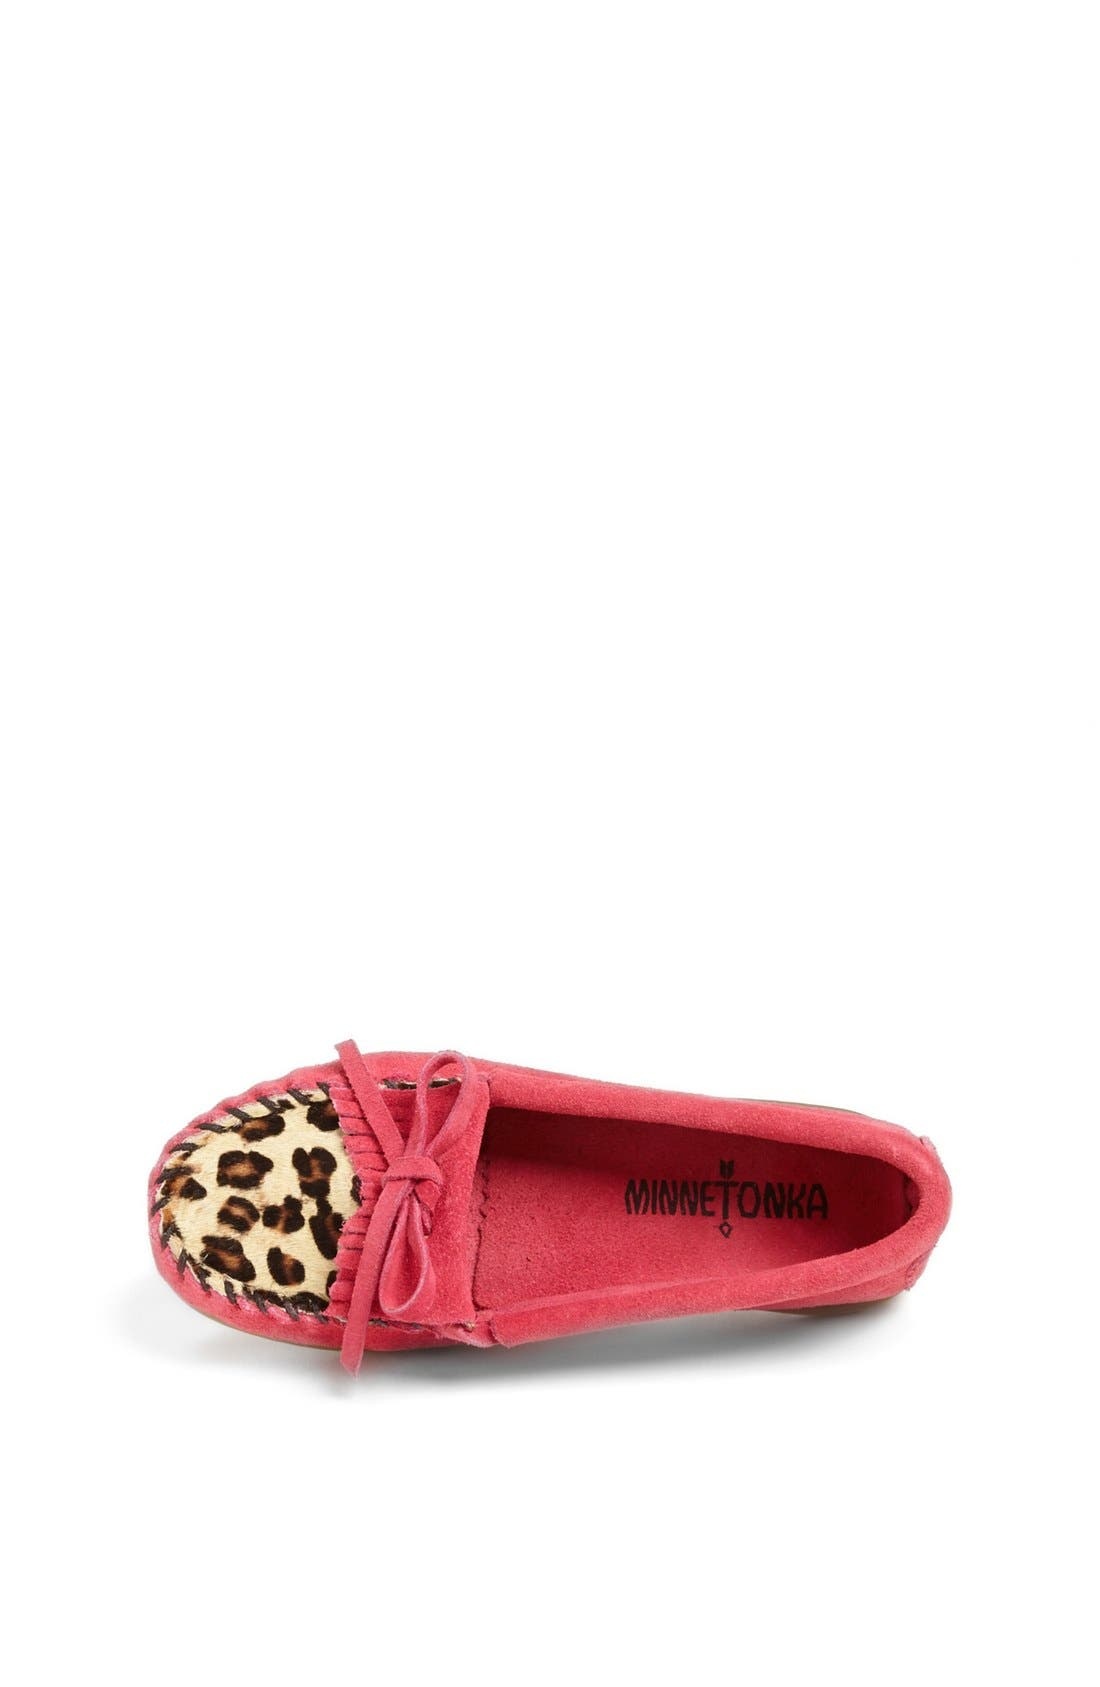 Alternate Image 3  - Minnetonka 'Kilty - Leopard' Moccasin (Walker, Toddler, Little Kid & Big Kid)